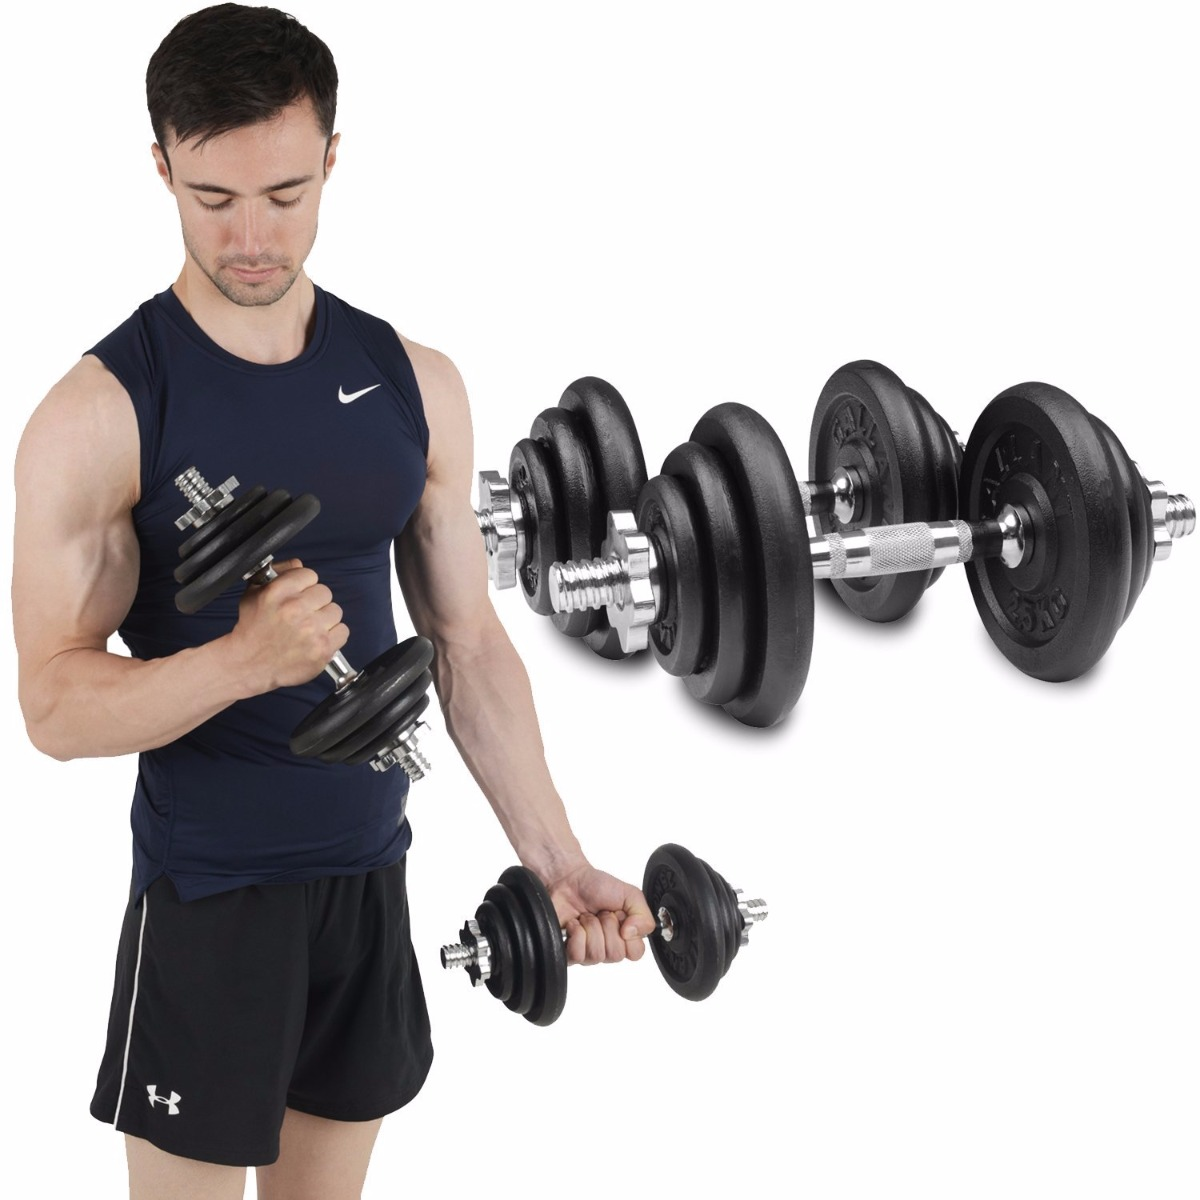 Free Weights Vs Machines: Barbell And Dumbbell Workout At Home